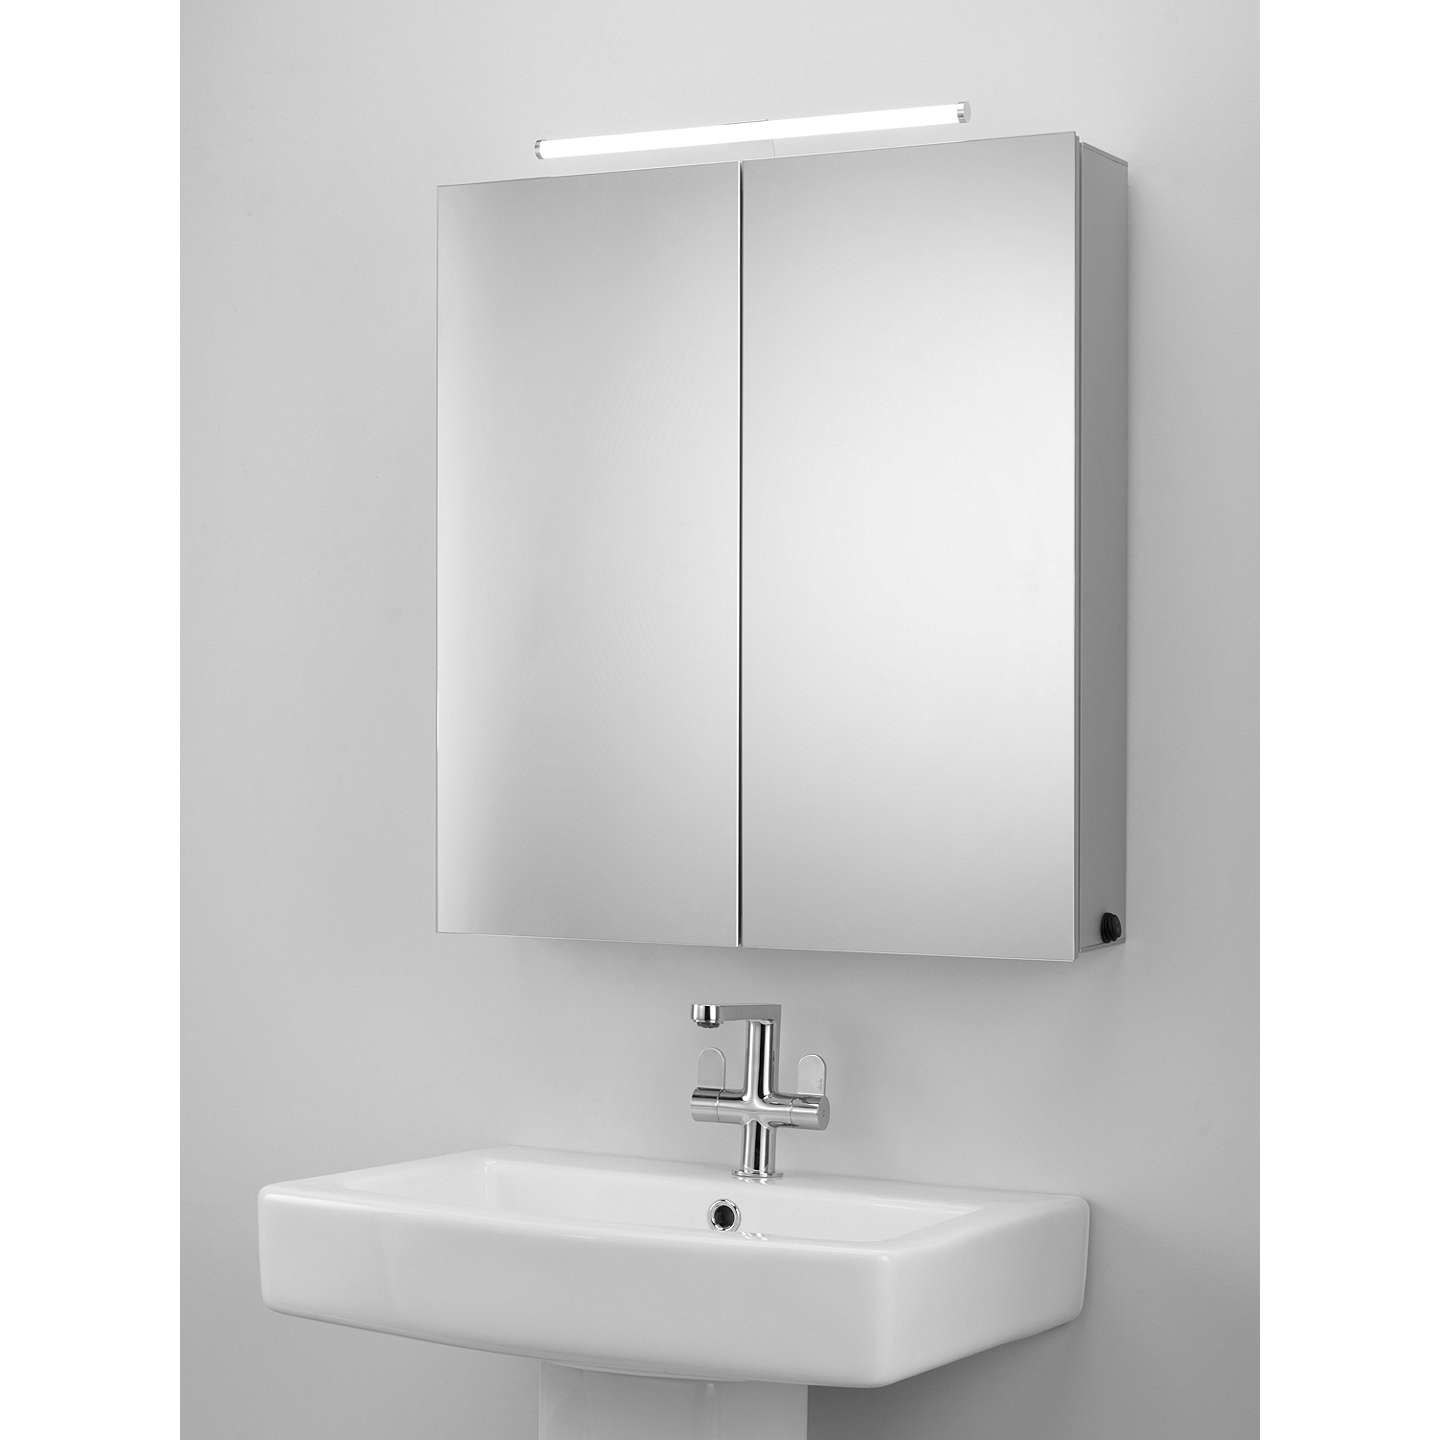 john lewis bathroom cabinets lewis debut bathroom cabinet at lewis 18030